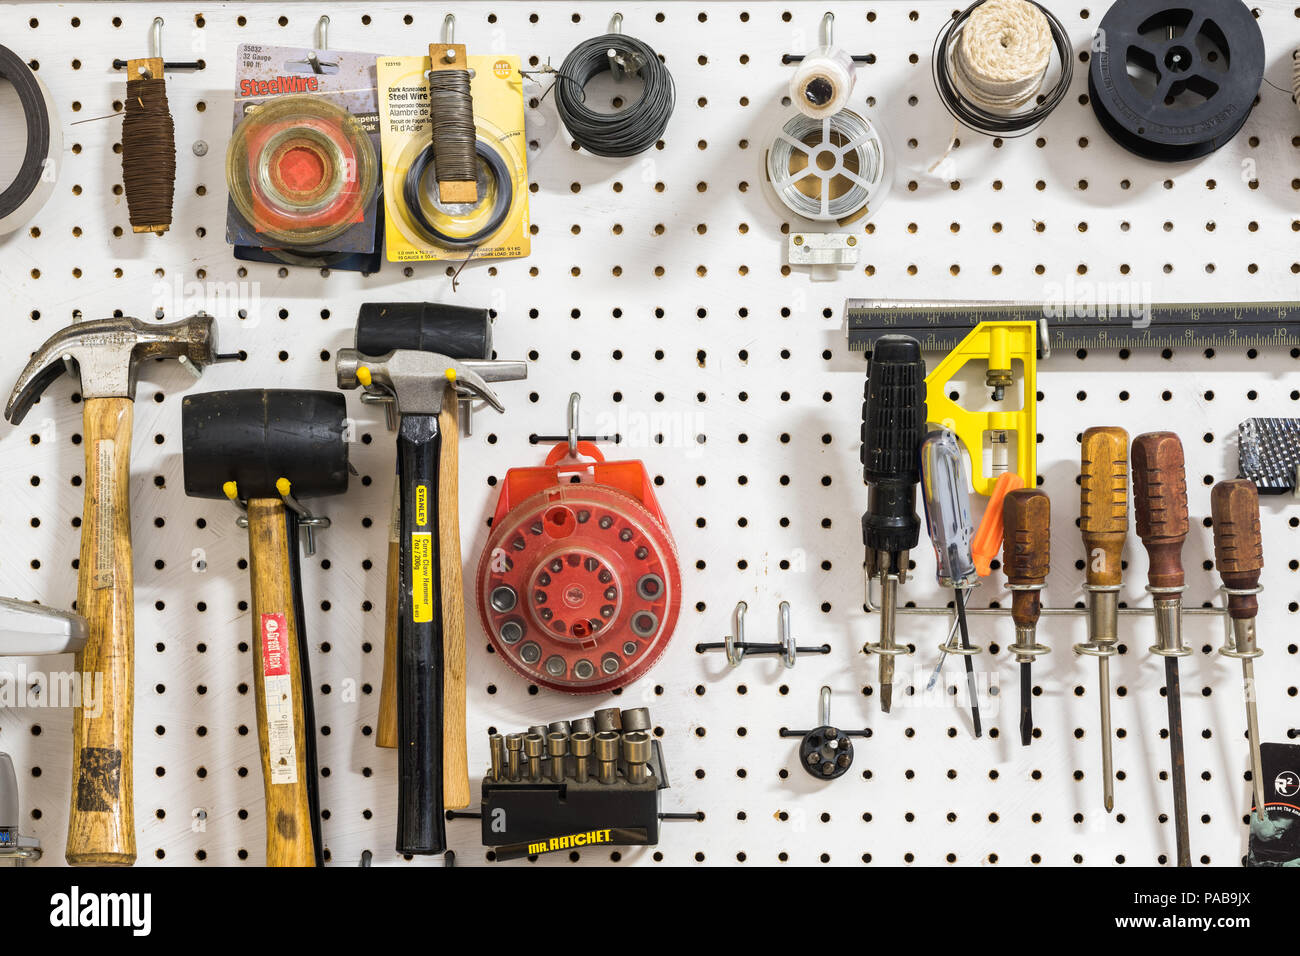 Assorted tools hanging on pegboard - Stock Image